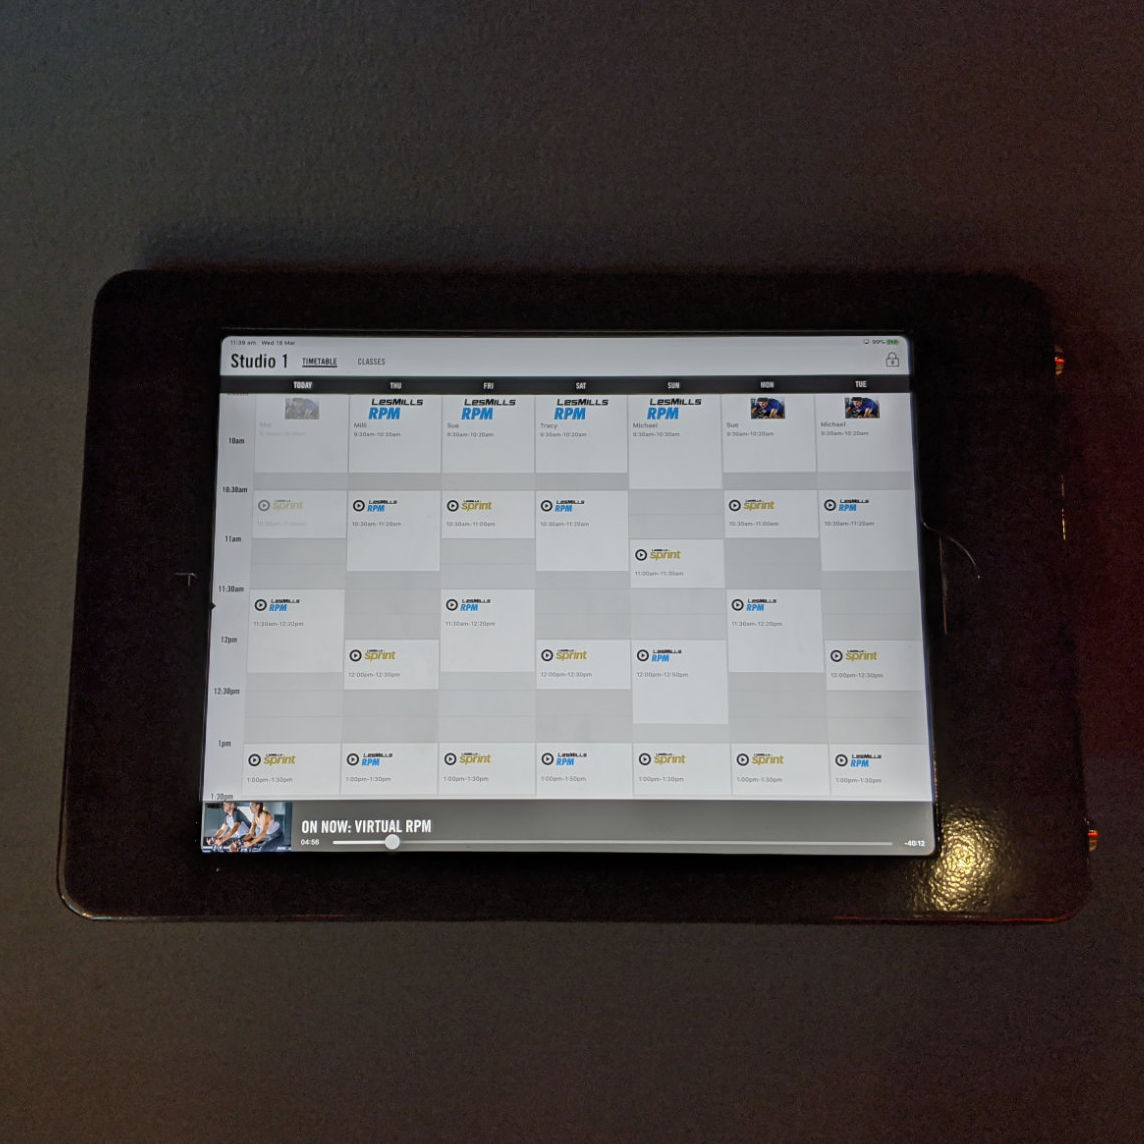 Wall Mount iPad Timetable at Les Mills Gym